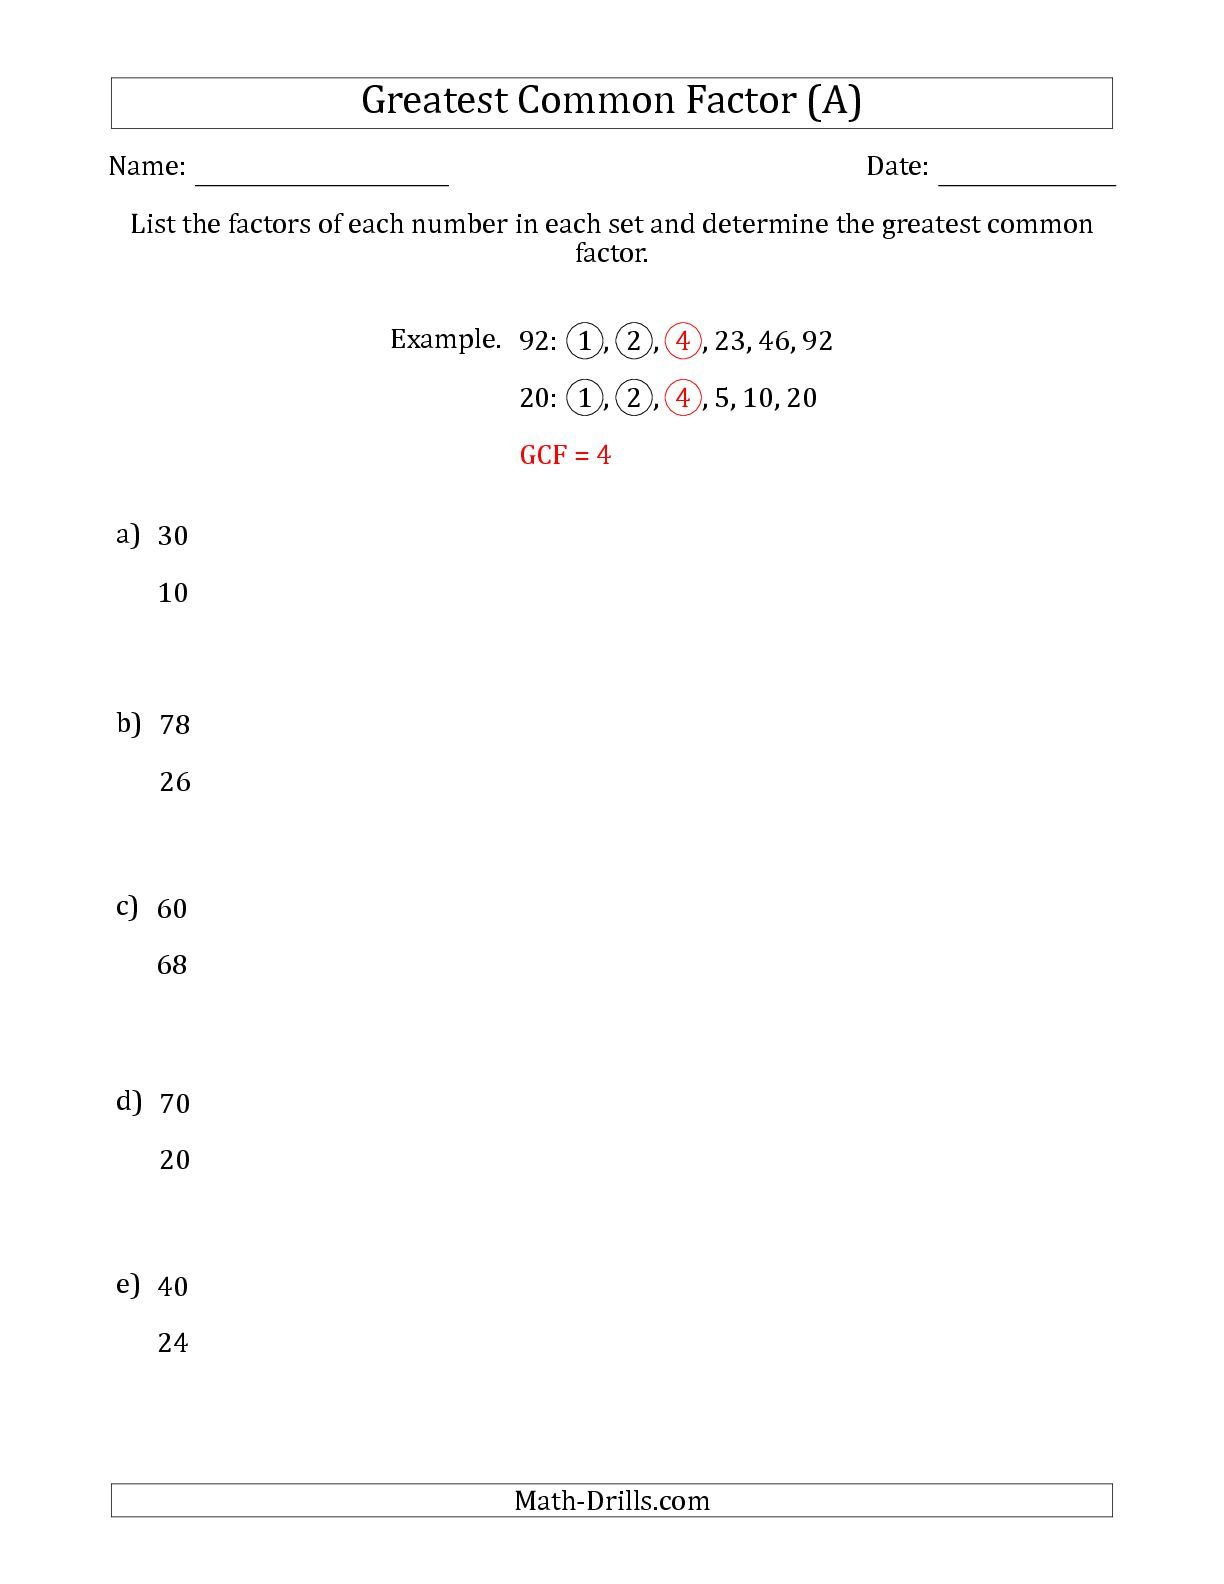 worksheet Factor And Multiple Worksheets the determining greatest common factors of sets two numbers from 4 to 100 a